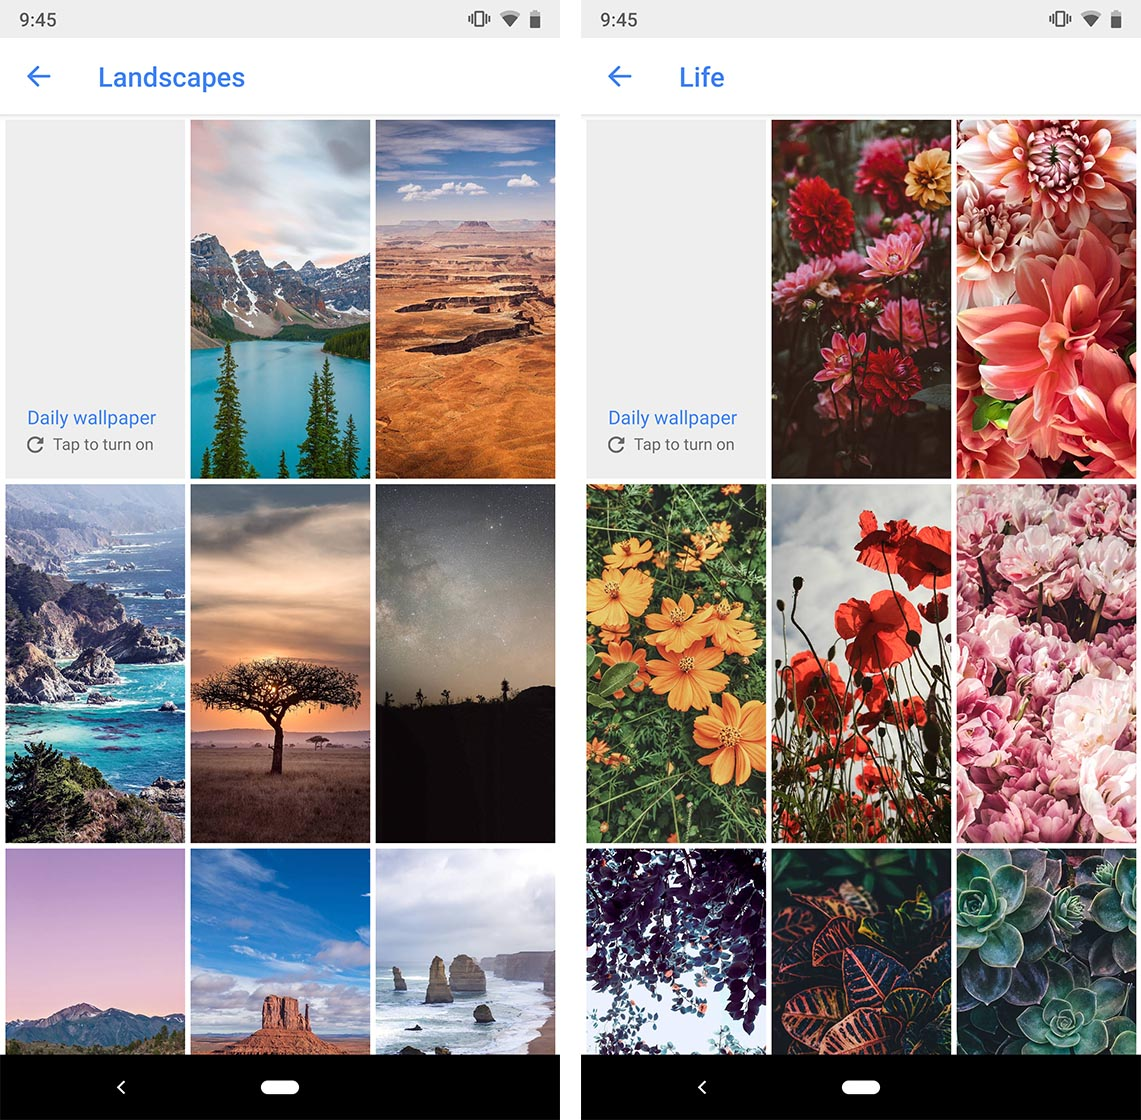 Google Wallpapers Landscapes and Life collections